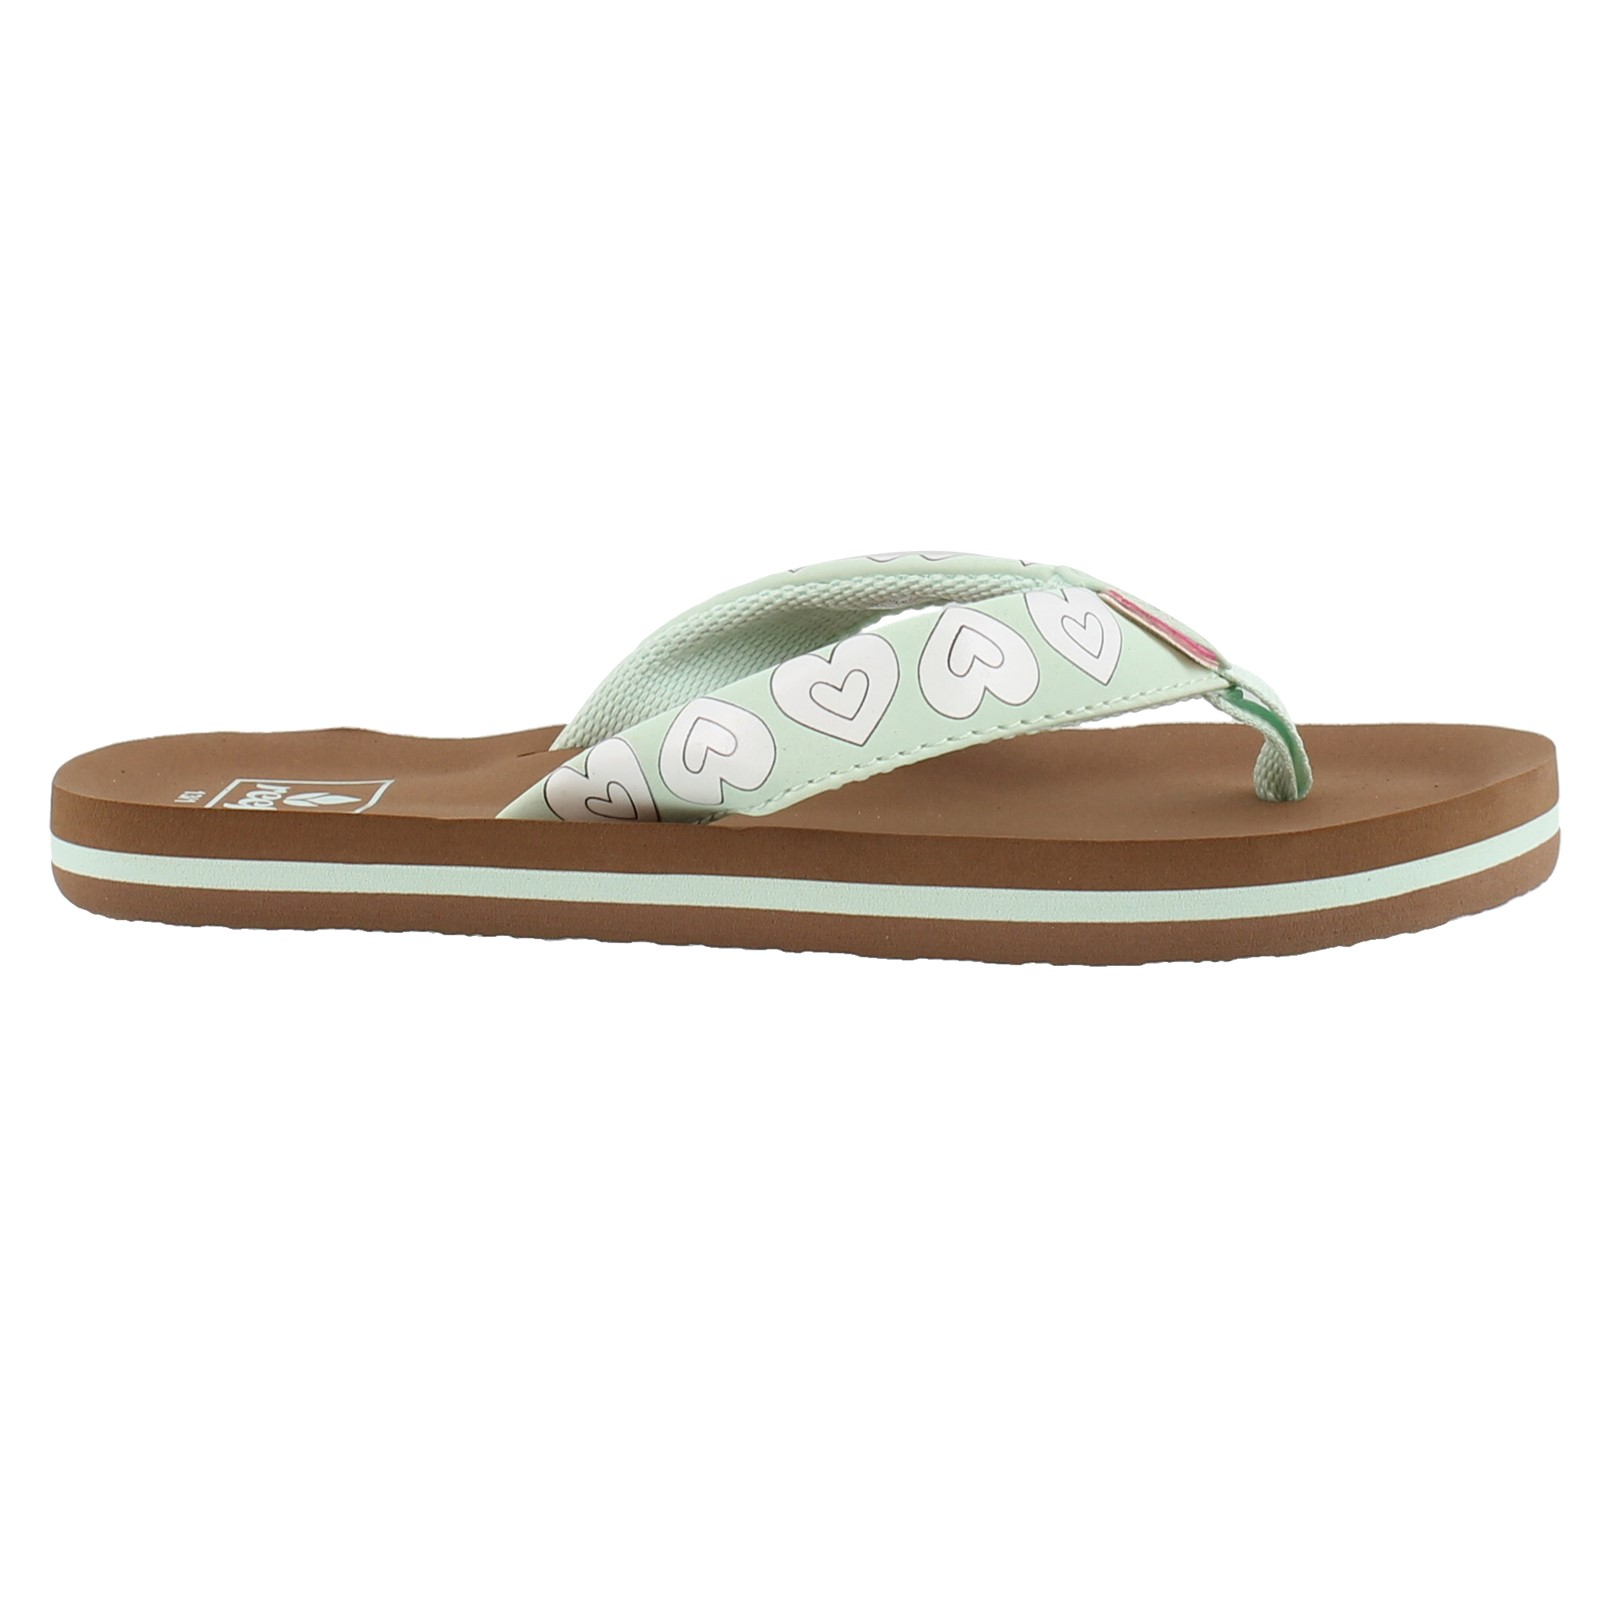 Girl's Reef, Little Ahi Color Changing Flip Flop - Toddler